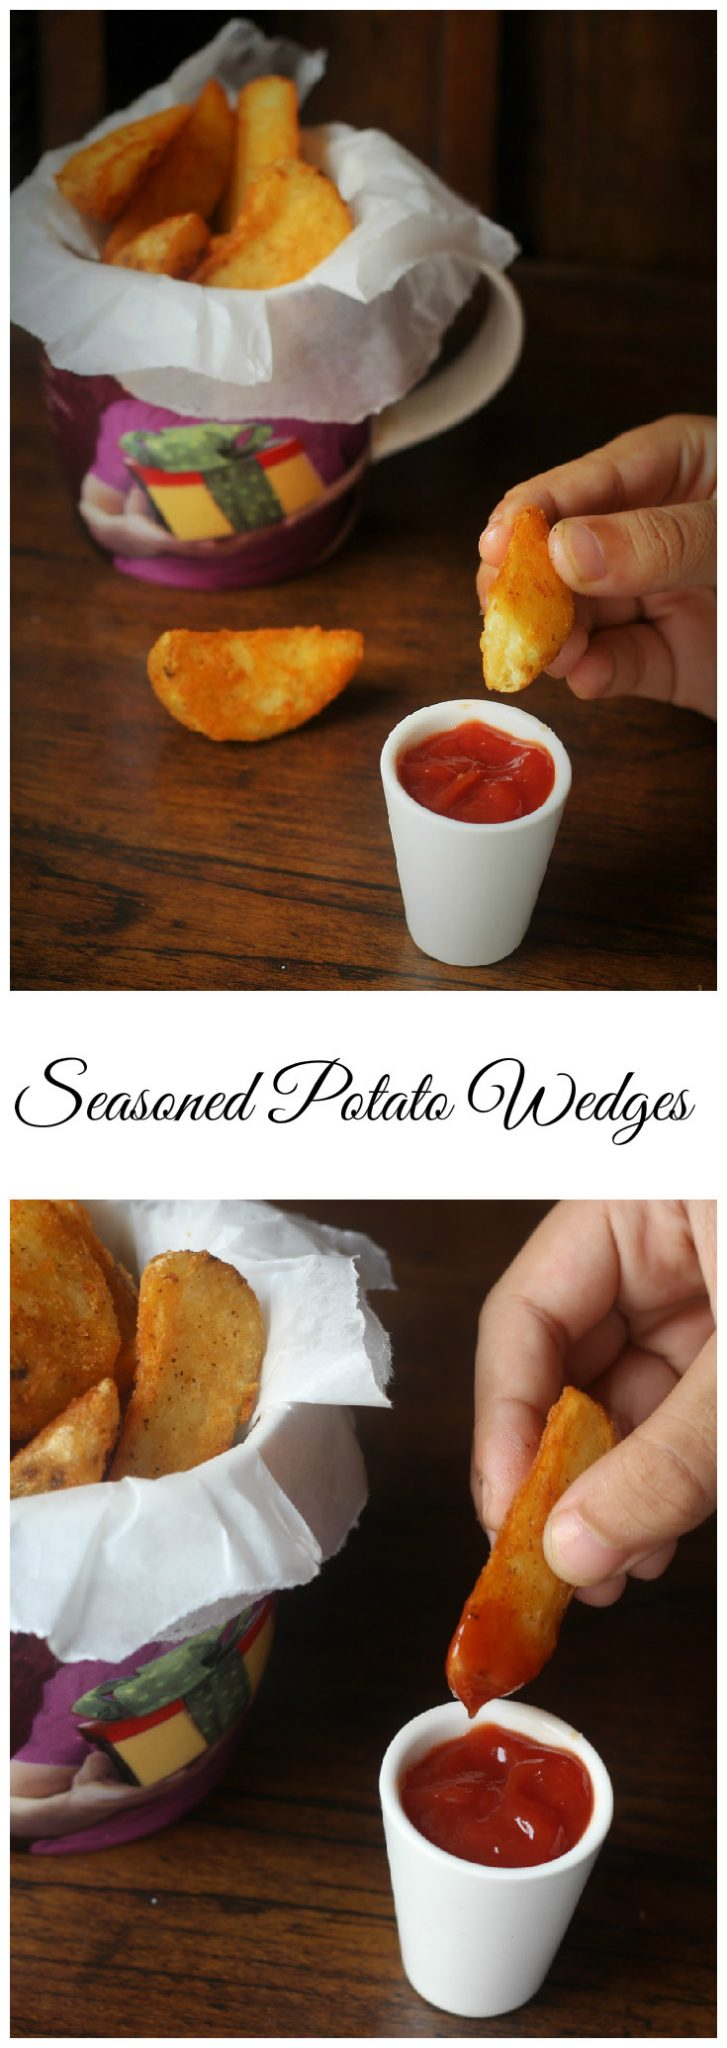 Delicious and Tasty Indian Seasoned Potato Wedges